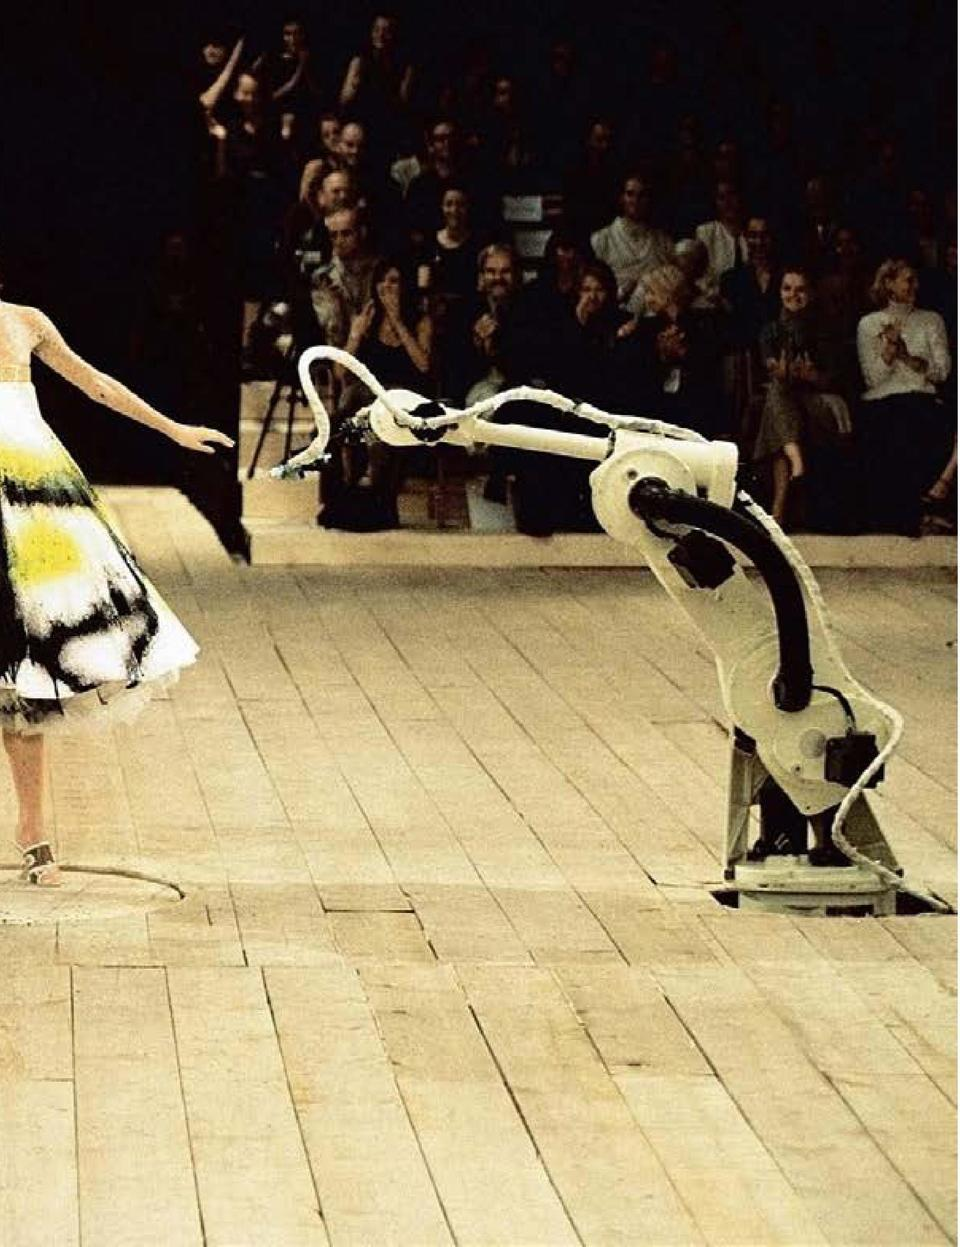 WITH THE COMPANY OF ALEXANDER MCQUEEN   S WORK CALLED    ROTATING ON A TURNTABLE   , WEARING A WHITE DRESS, BEING SPRAY-PA...